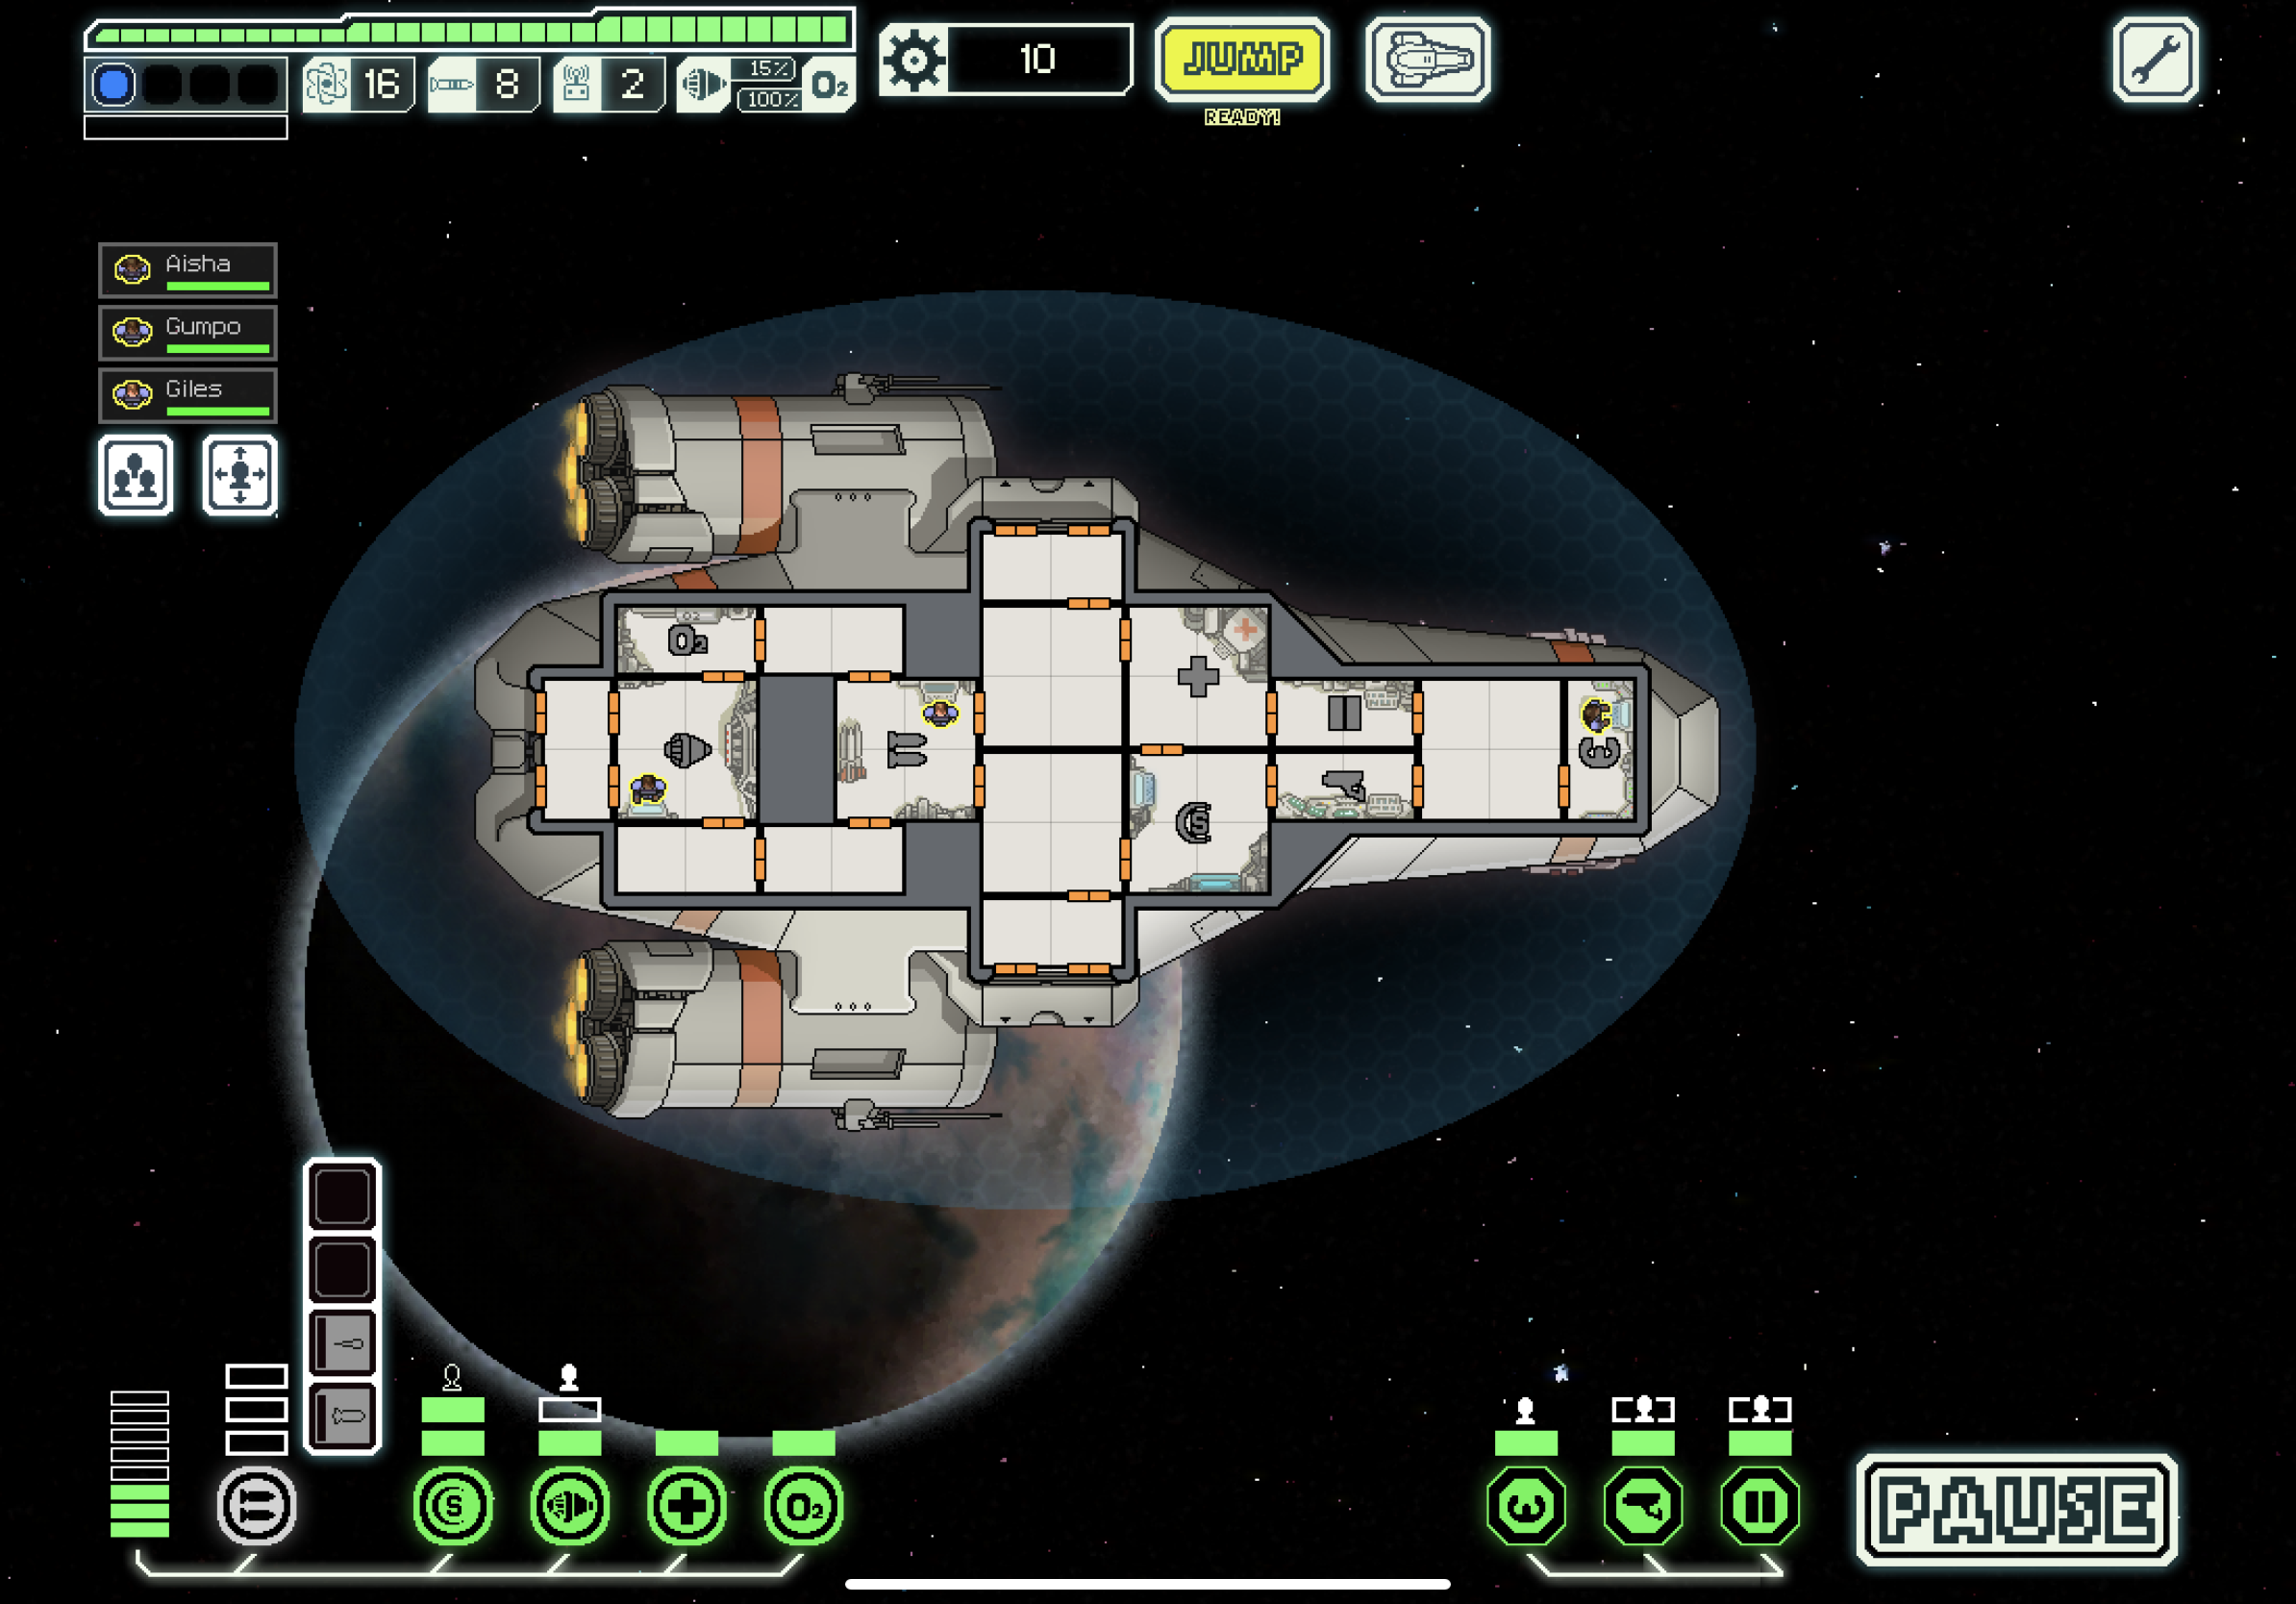 'FTL: Faster Than Light' for iPad Just Got Its First Update in Years Adding Full Screen Support on Newer iPad Models and More